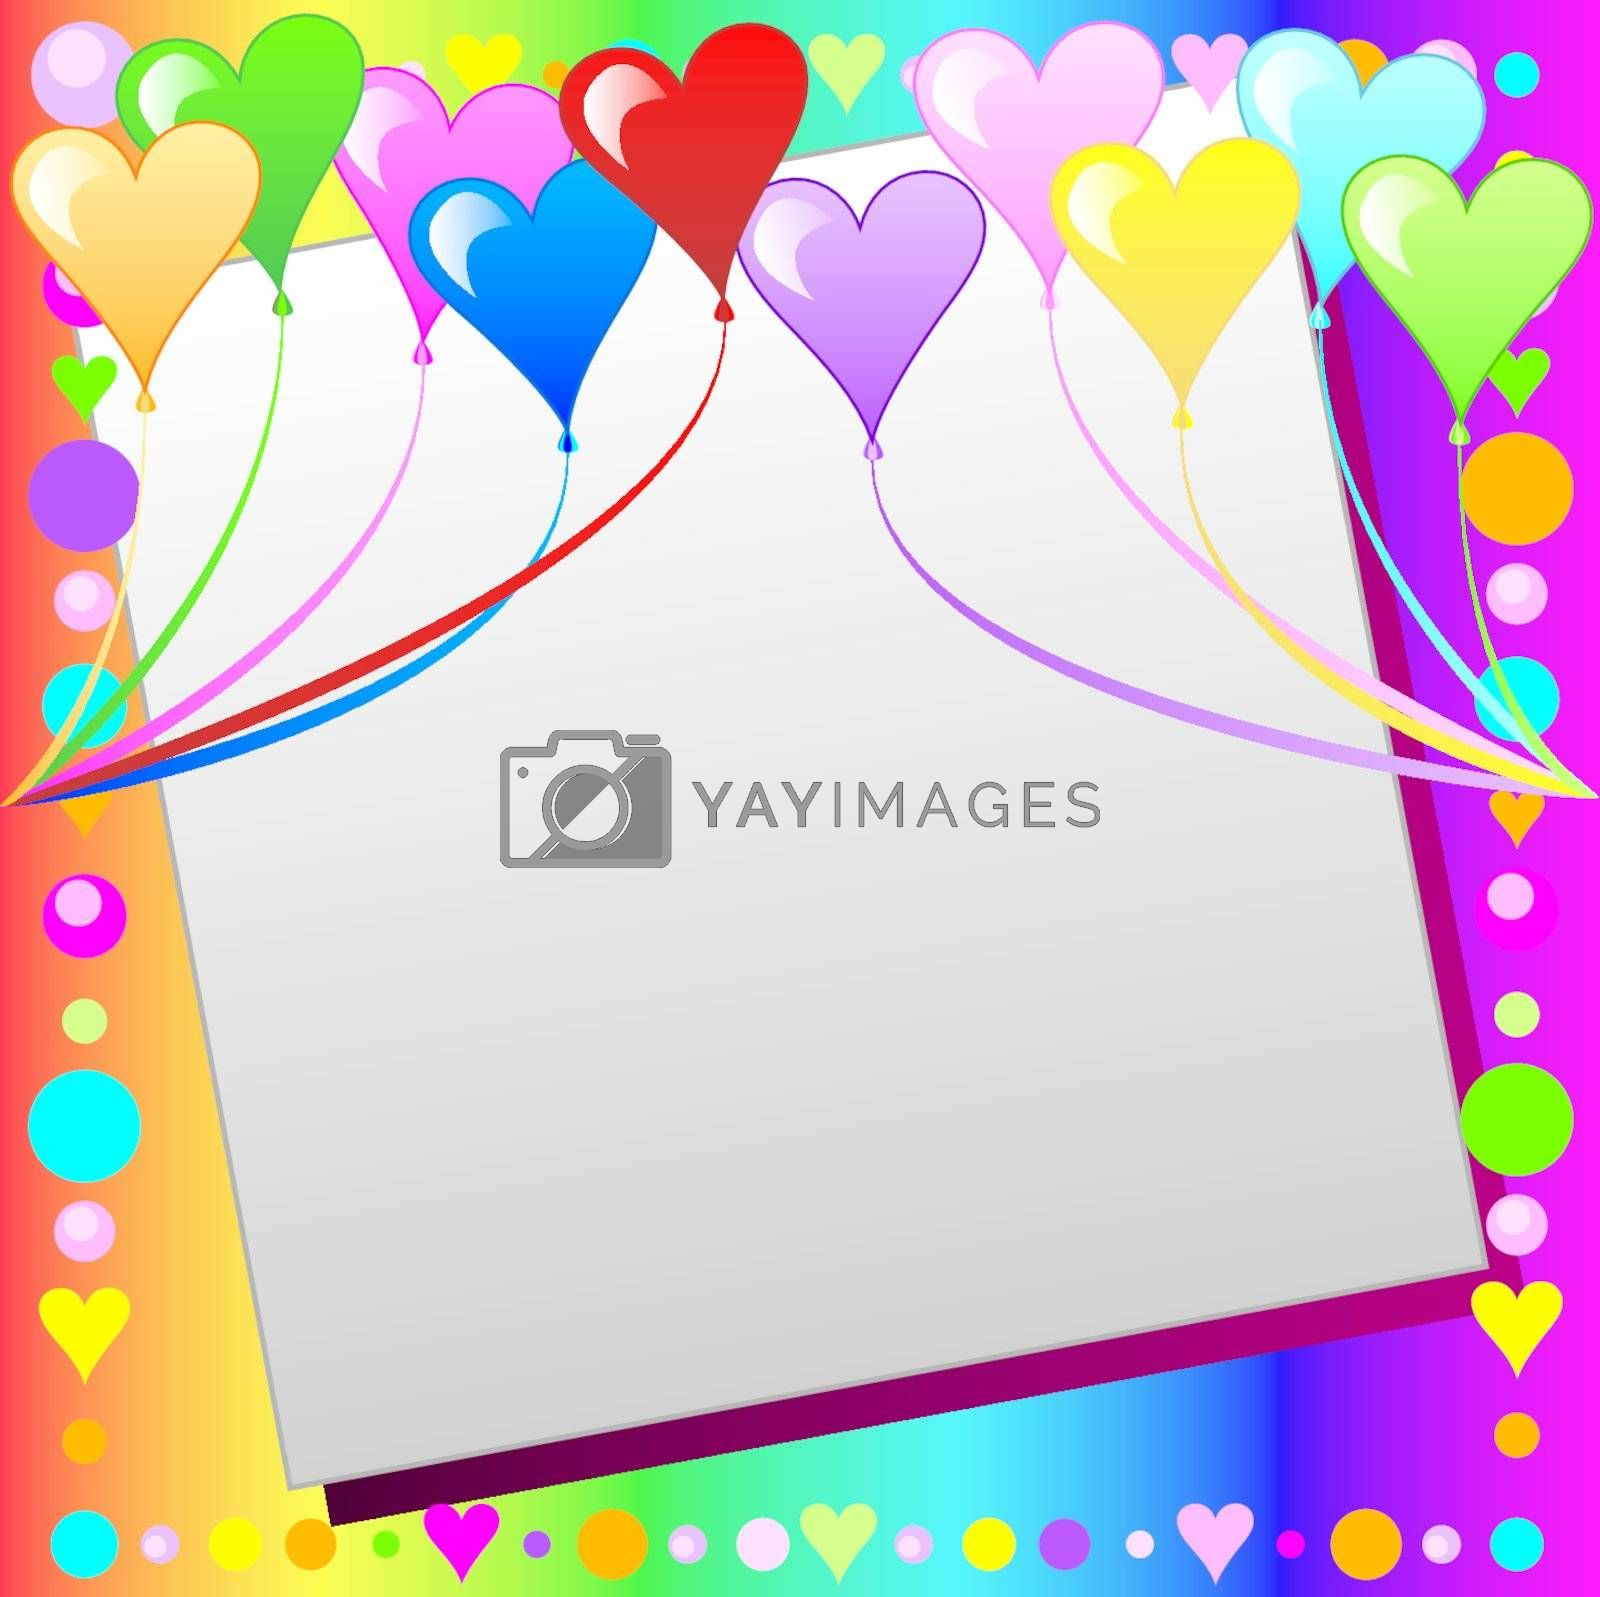 Vector Illustration can be used as a book cover, card or anything you choose. There is room for your text.